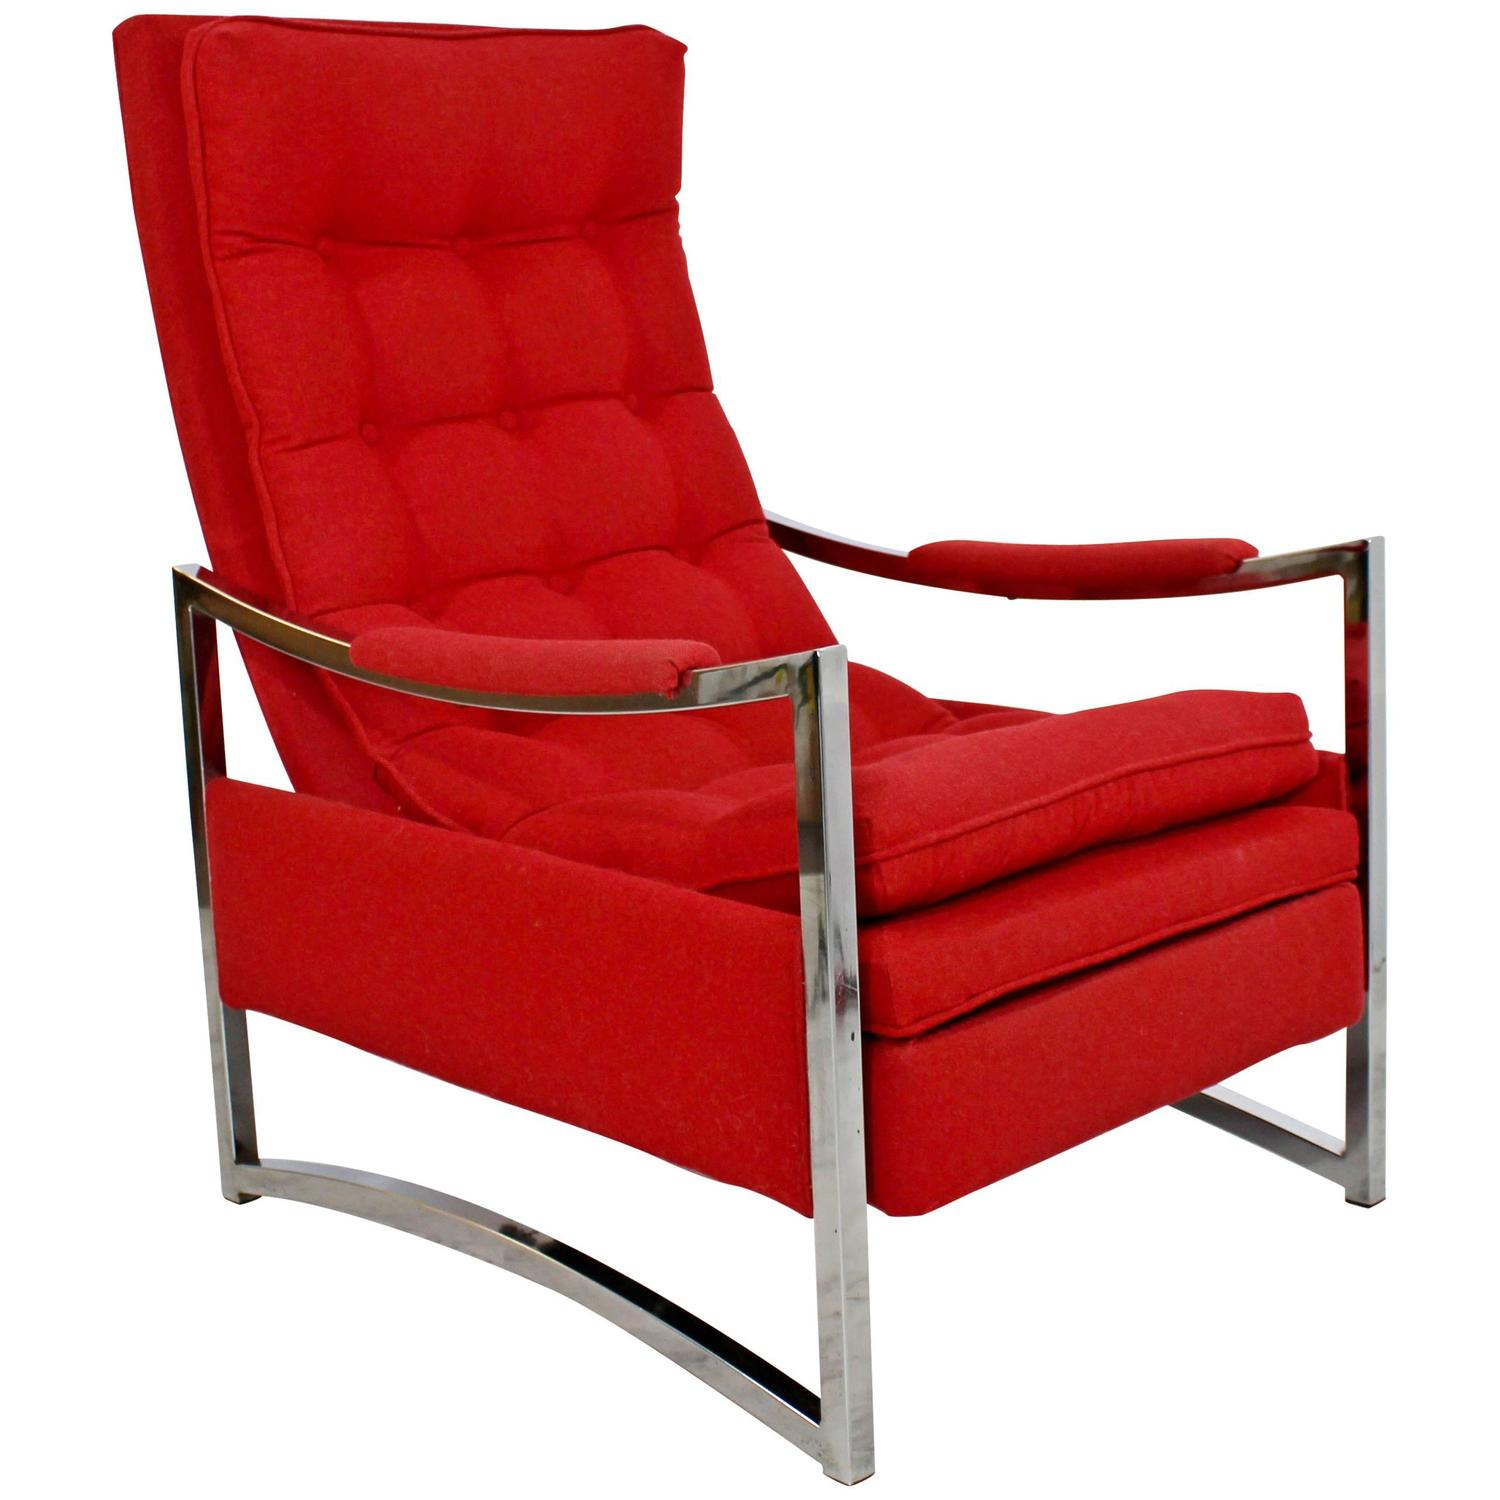 Oversized round swivel lounge chair mid century modern at 1stdibs - Mid Century Modern Baughman Attributed Chrome Recliner Chair Robert Allen Wool For Sale At 1stdibs